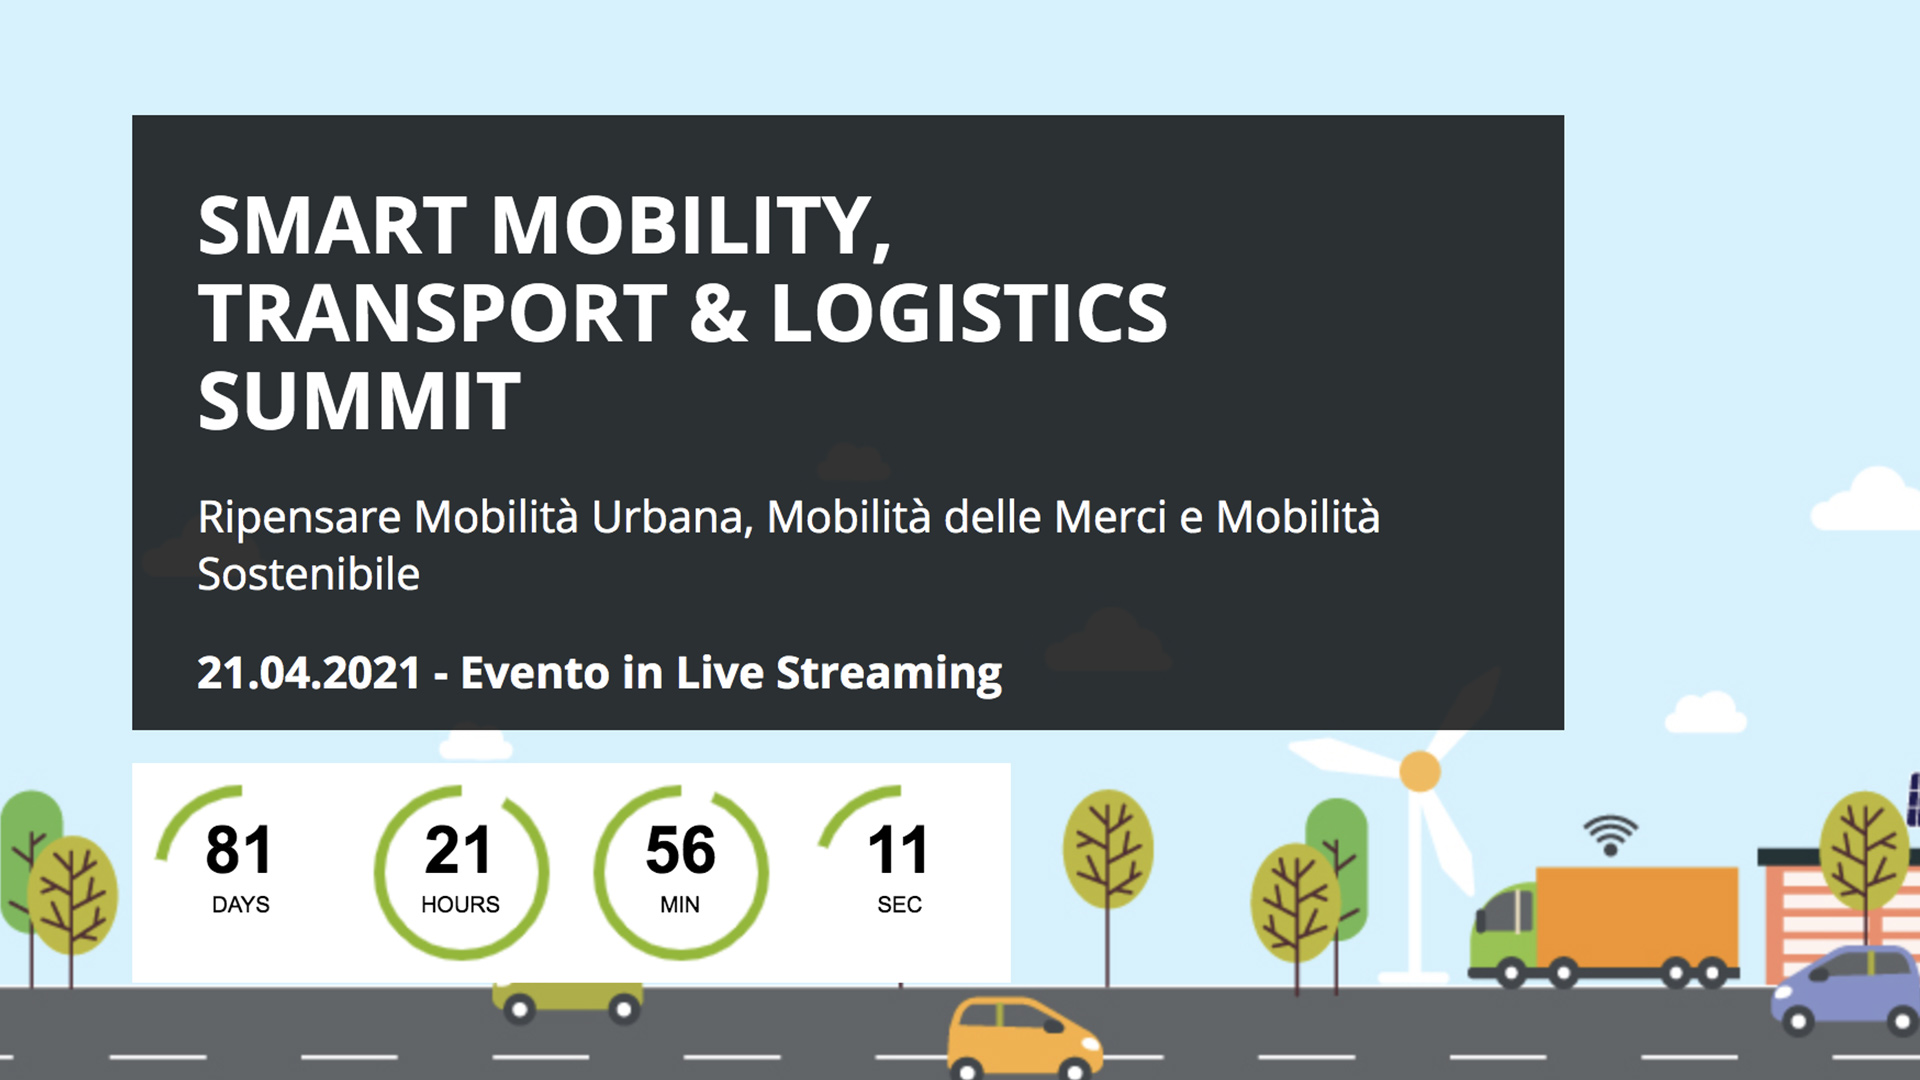 21 avril 2021 – Smart Mobility, transport & Logistics Summit 2021 – Milano (Italie)